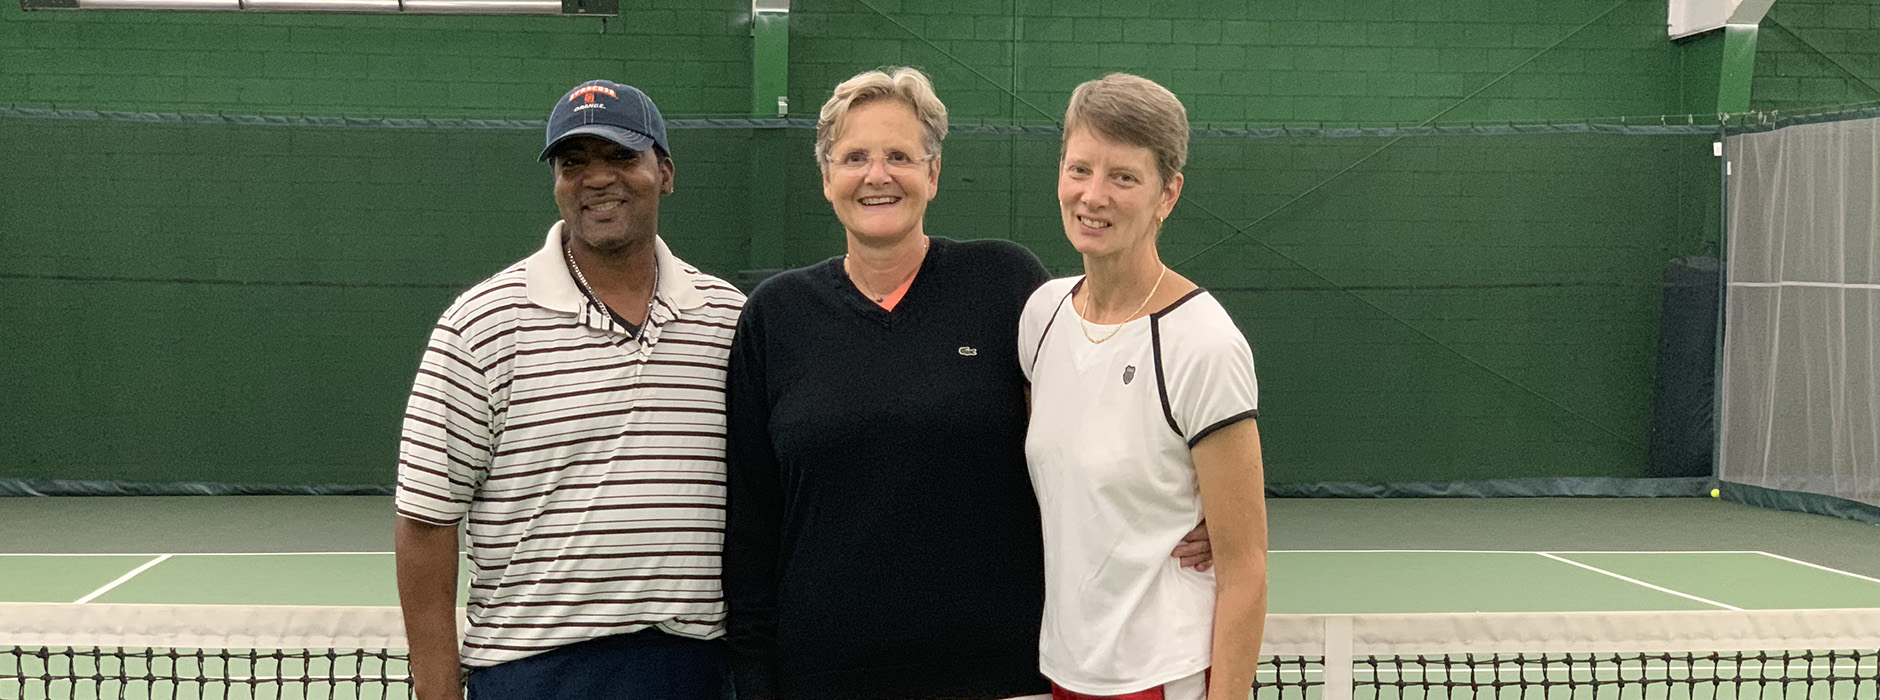 Gina's Tennis World - Team